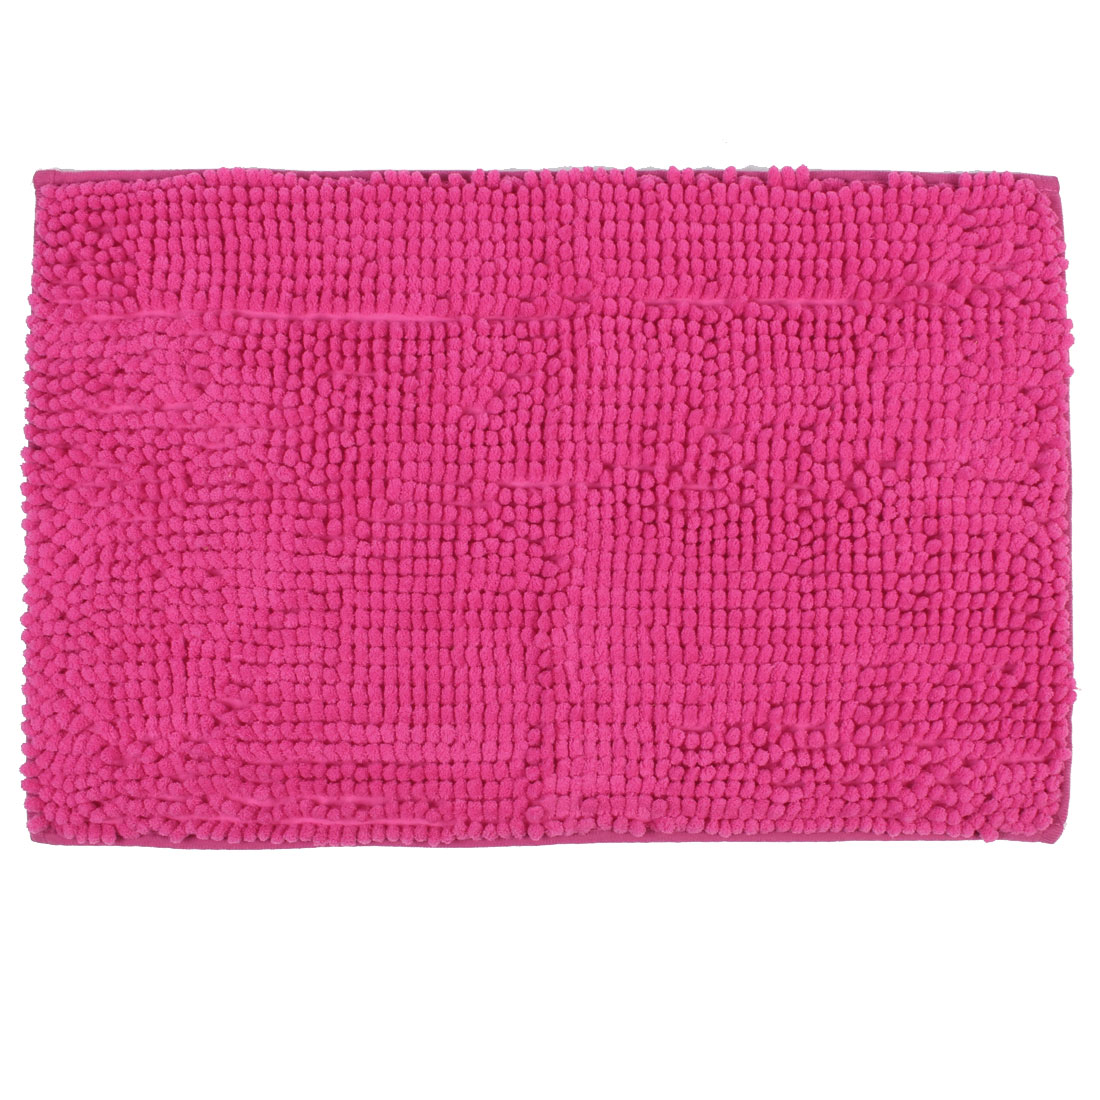 Home Bathroom Gym Soft Non Slip Absorbent Bath Mat Carpet Fuchsia 24 x 16 Inch